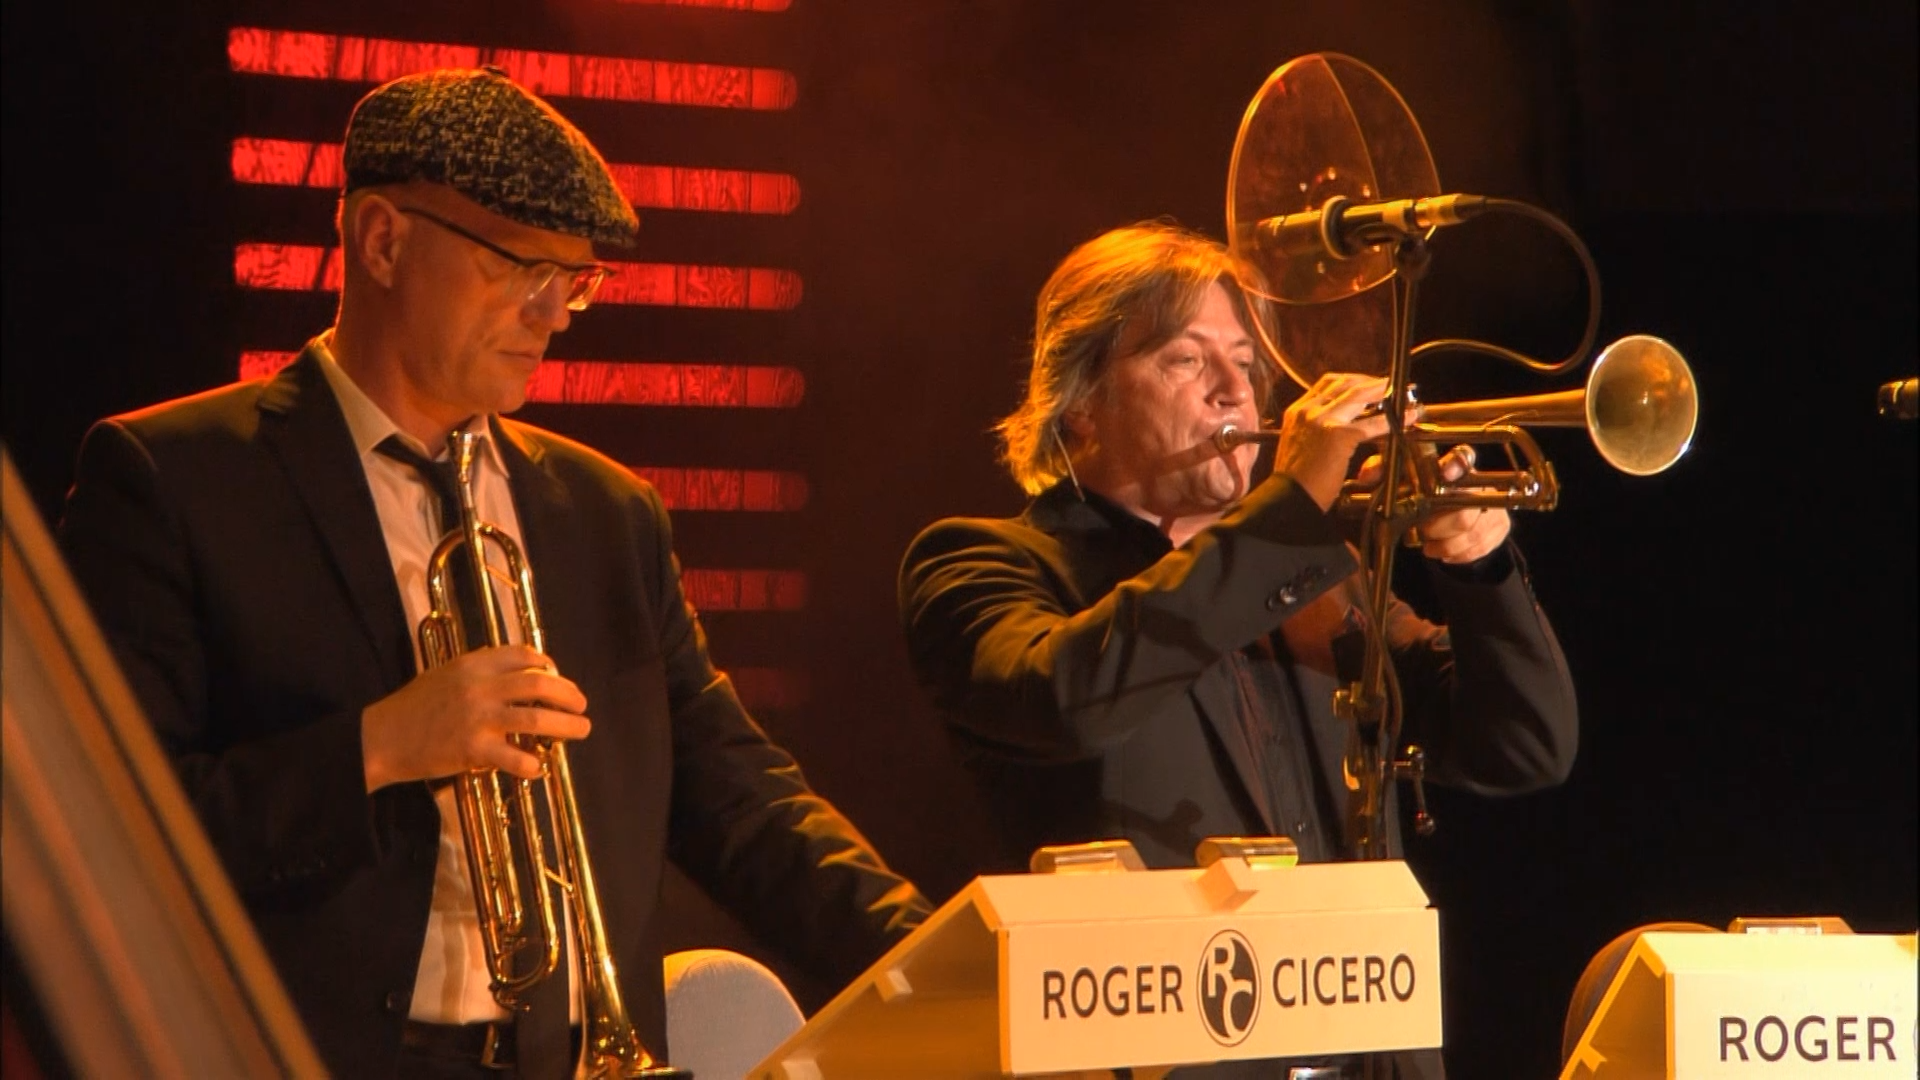 2010 Roger Cicero - Live at Montreux [Blu-ray] 0